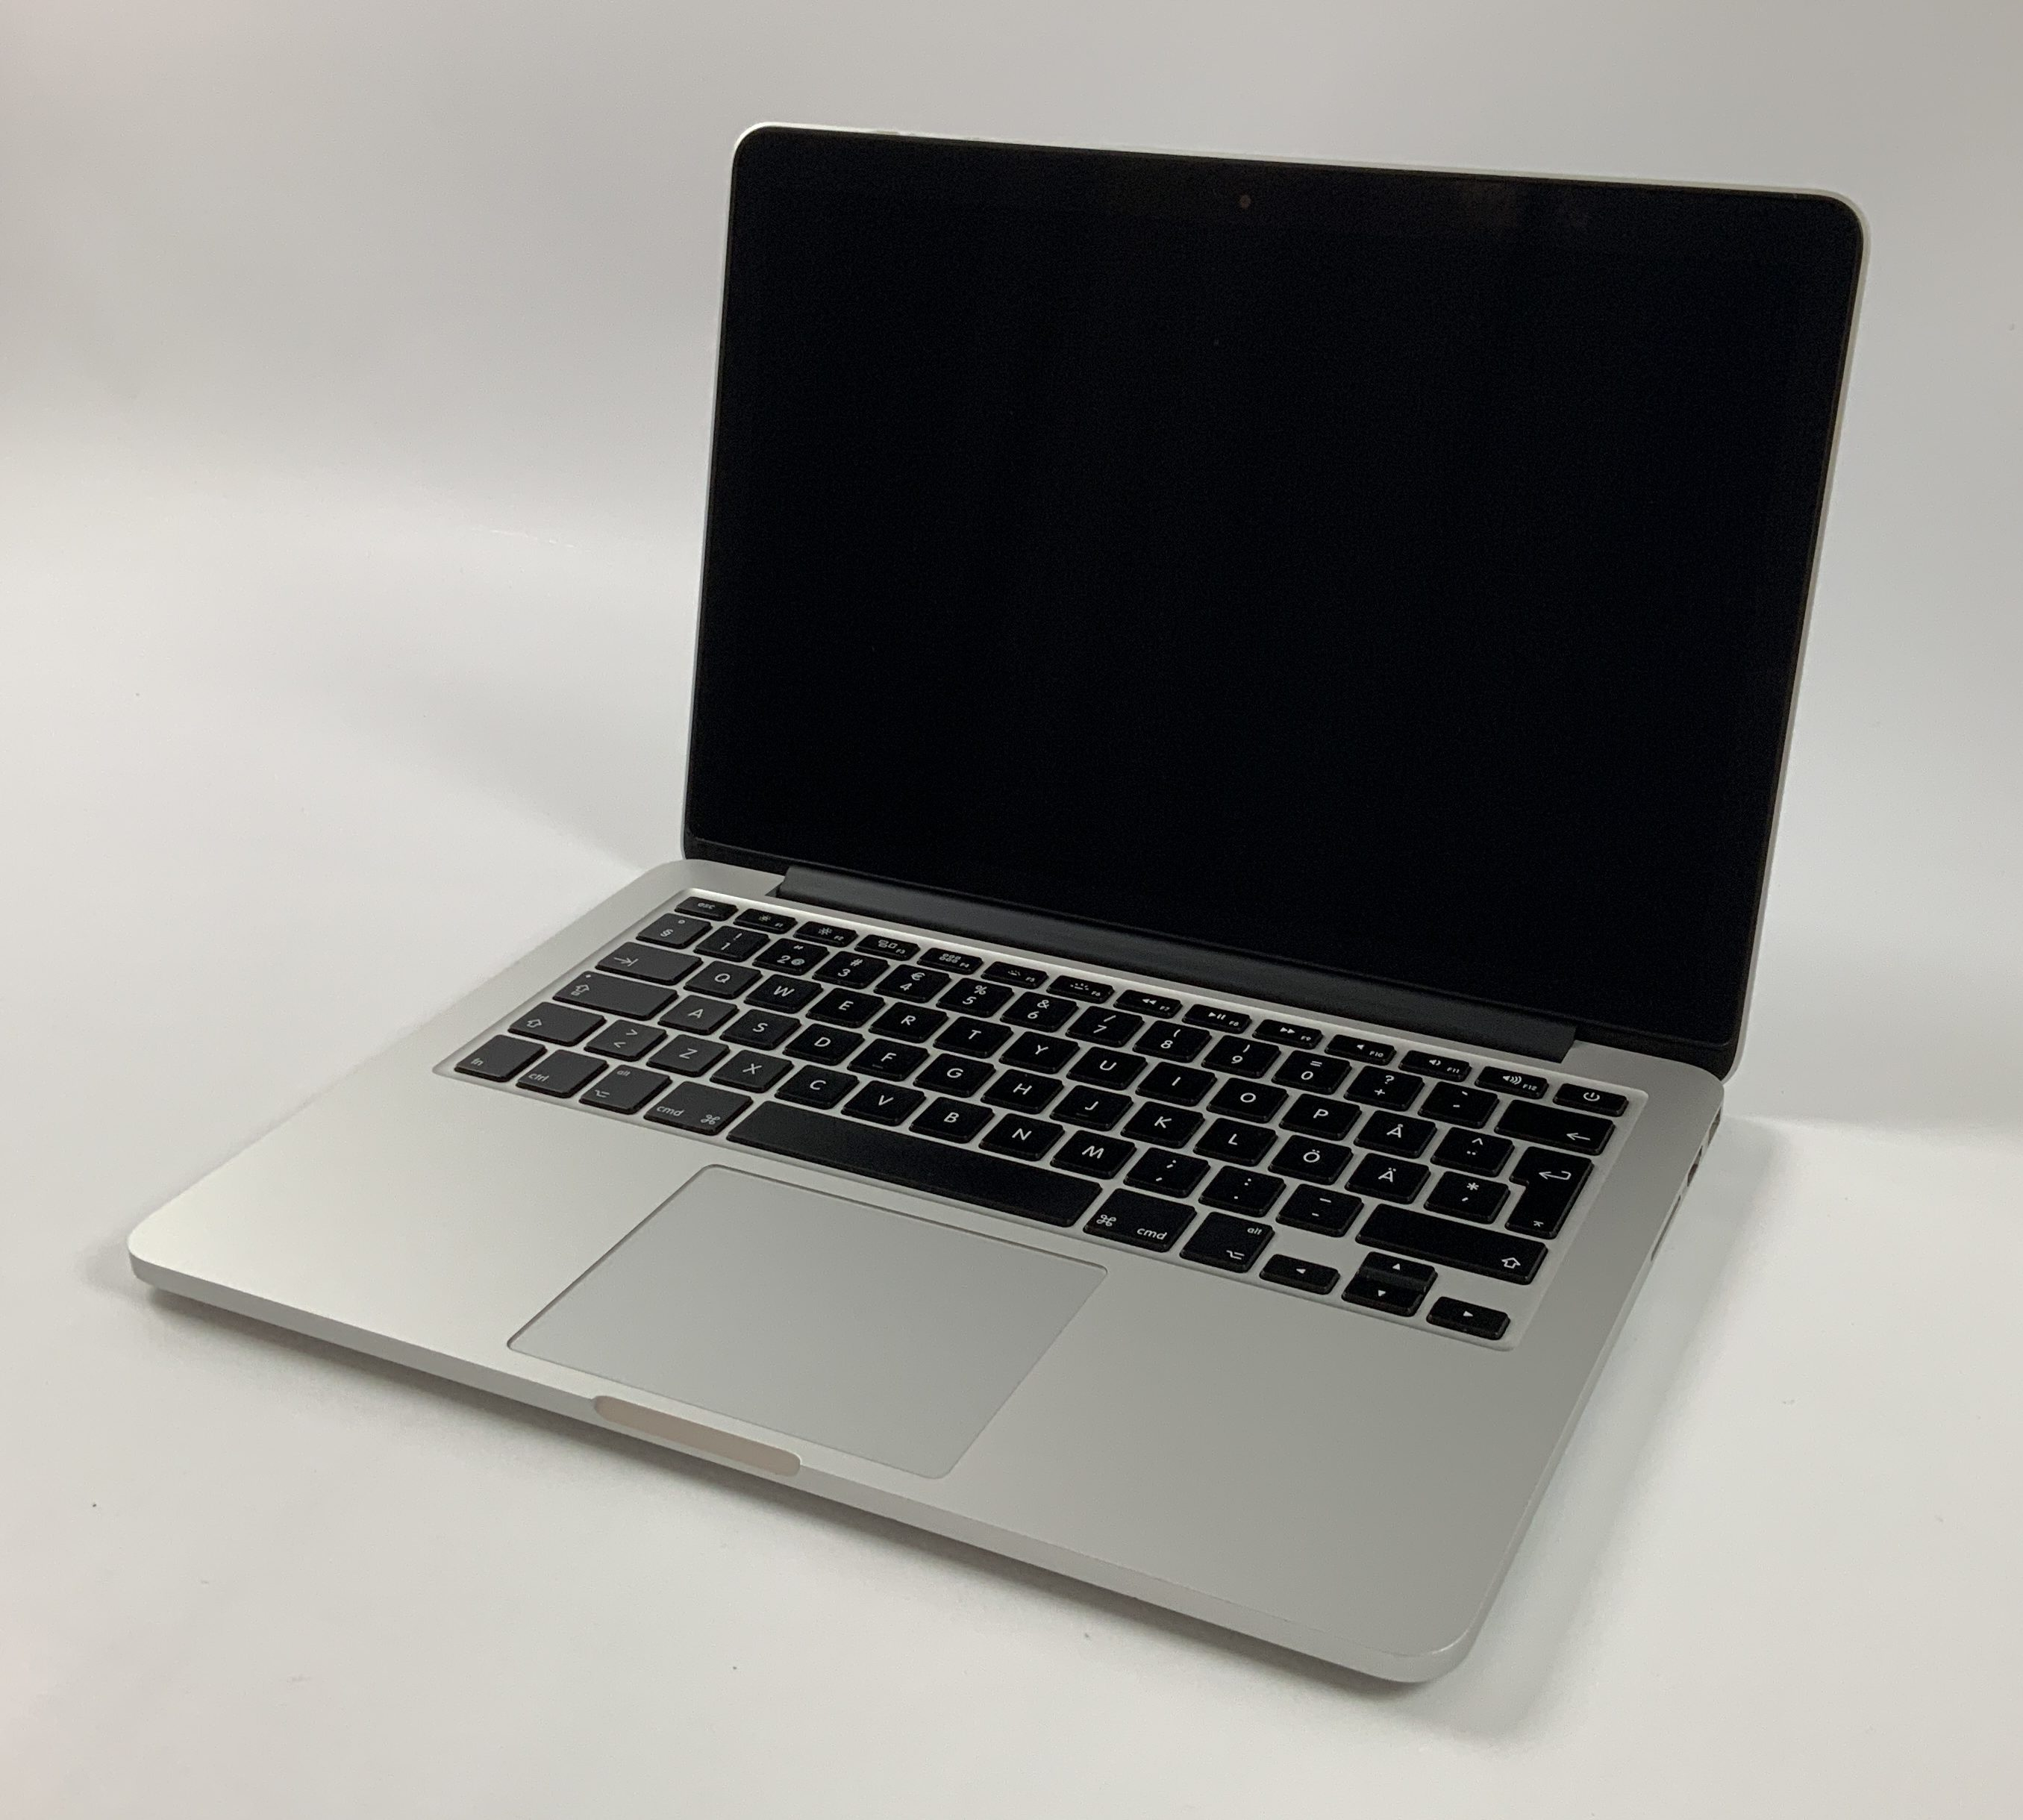 "MacBook Pro Retina 13"" Late 2013 (Intel Core i5 2.4 GHz 8 GB RAM 256 GB SSD), Intel Core i5 2.4 GHz, 8 GB RAM, 256 GB SSD, Kuva 1"